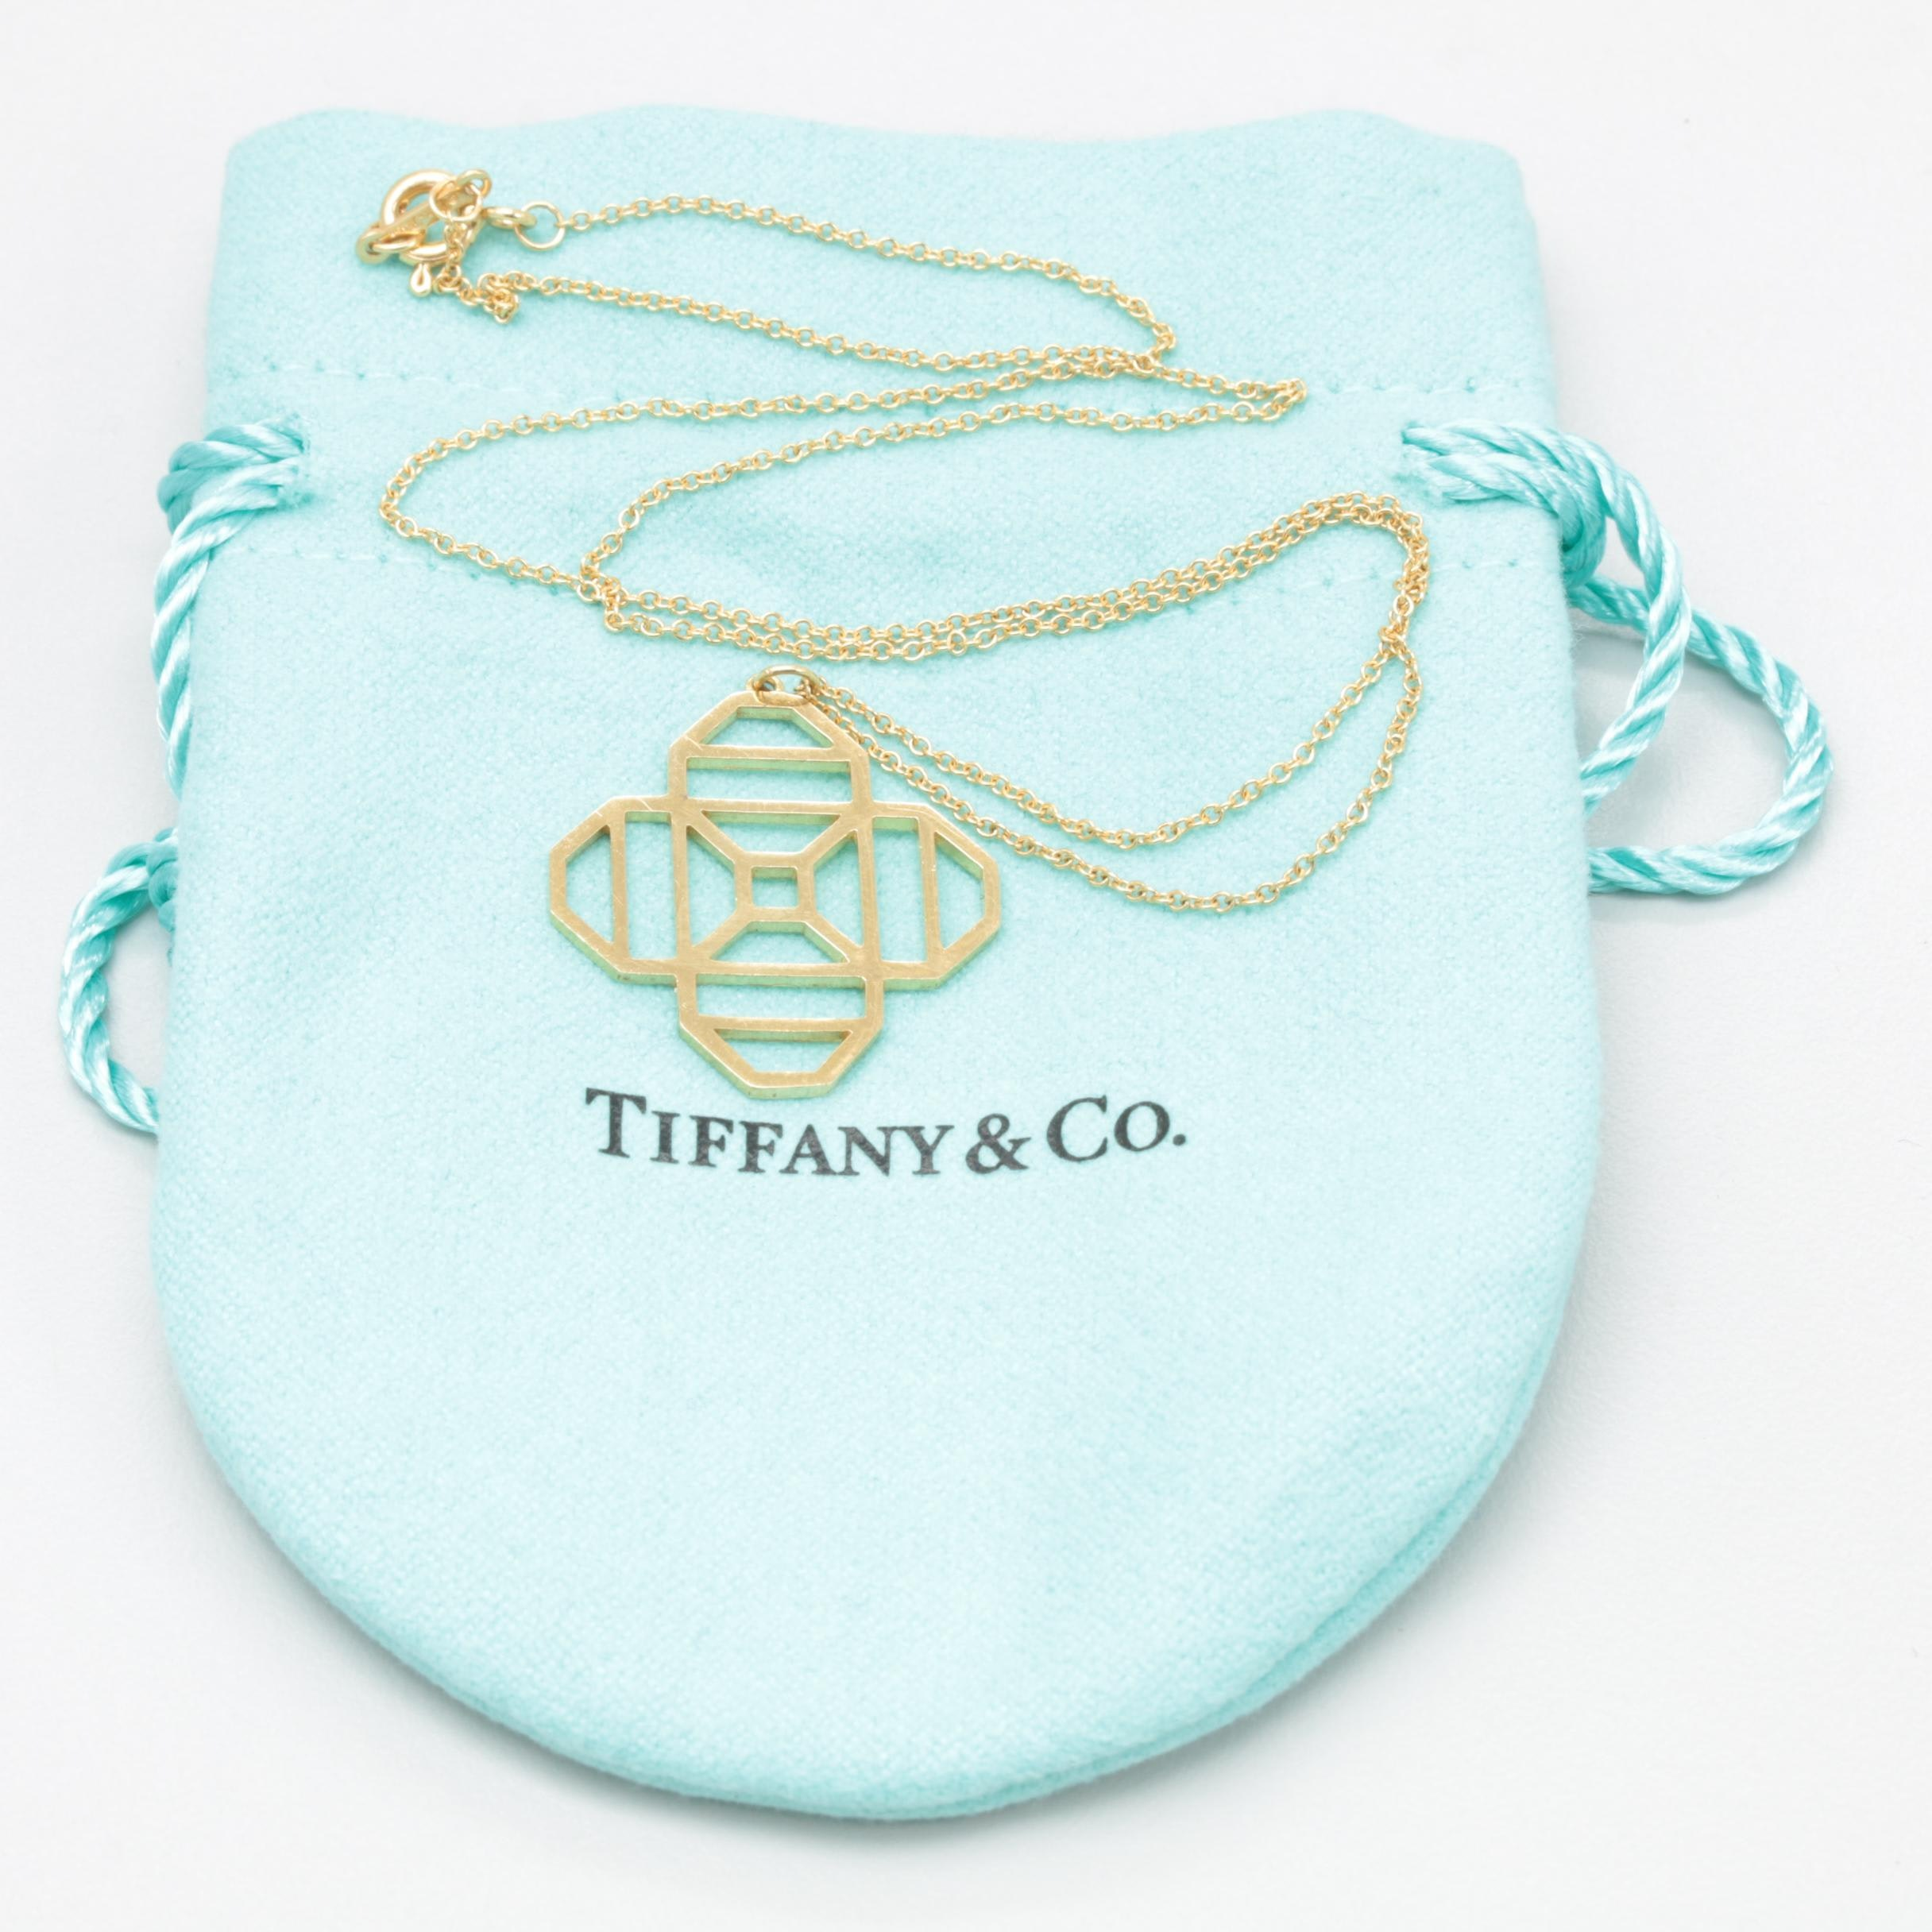 "Paloma Picasso for Tiffany & Co. ""Zellige Collection"" 18K Yellow Gold Necklace"